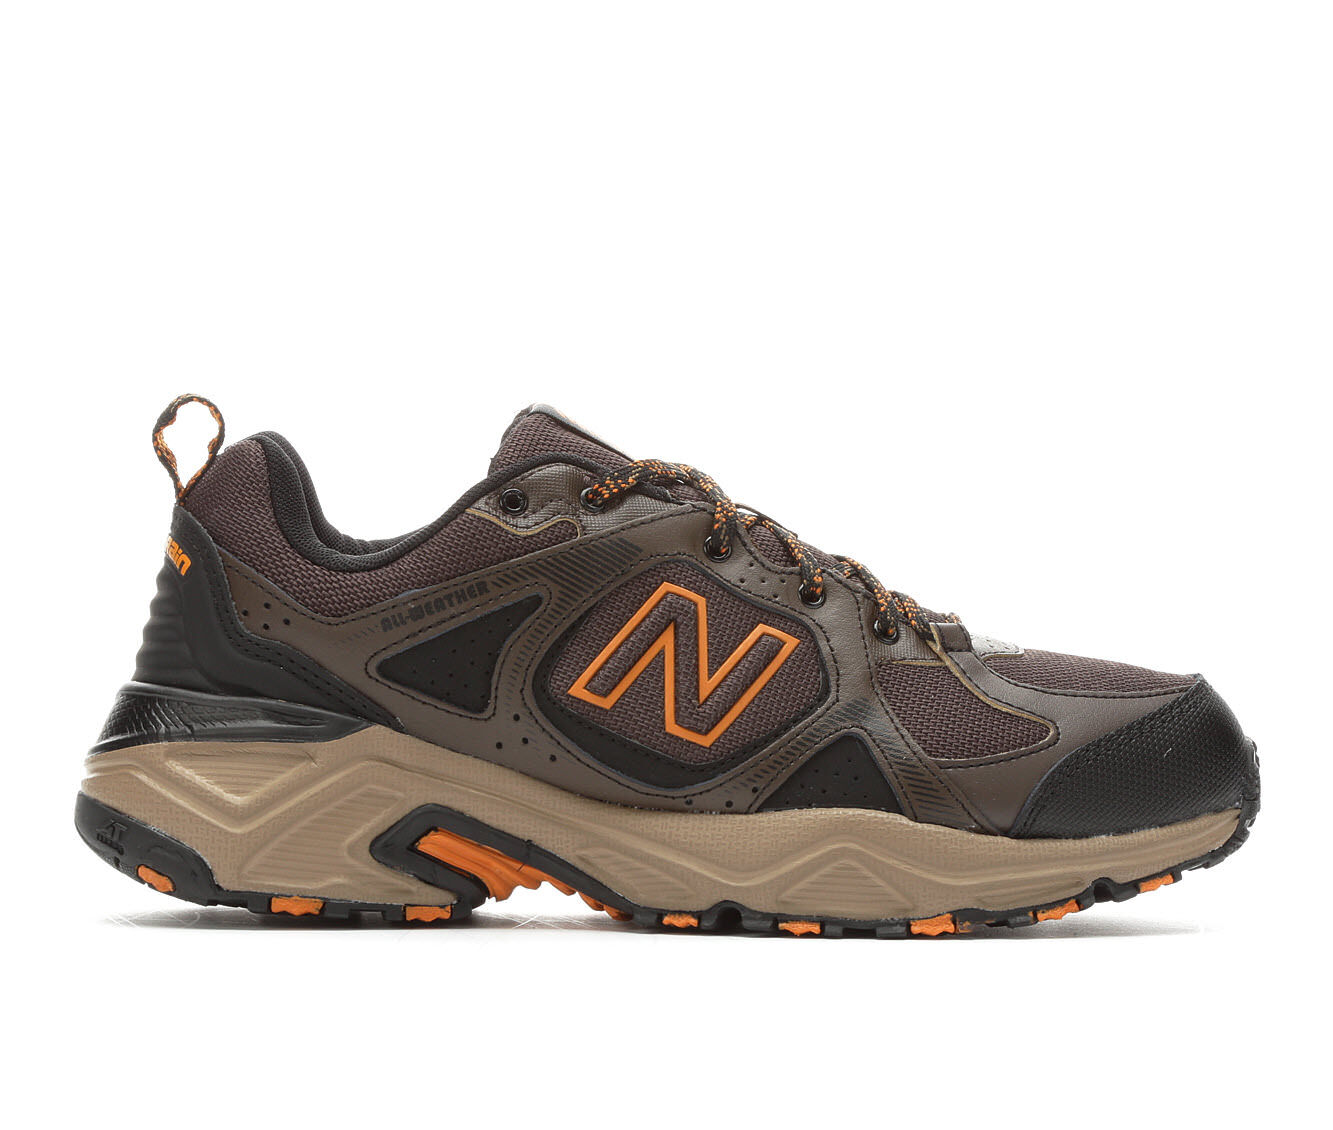 new balance men's 373 trainers olive green